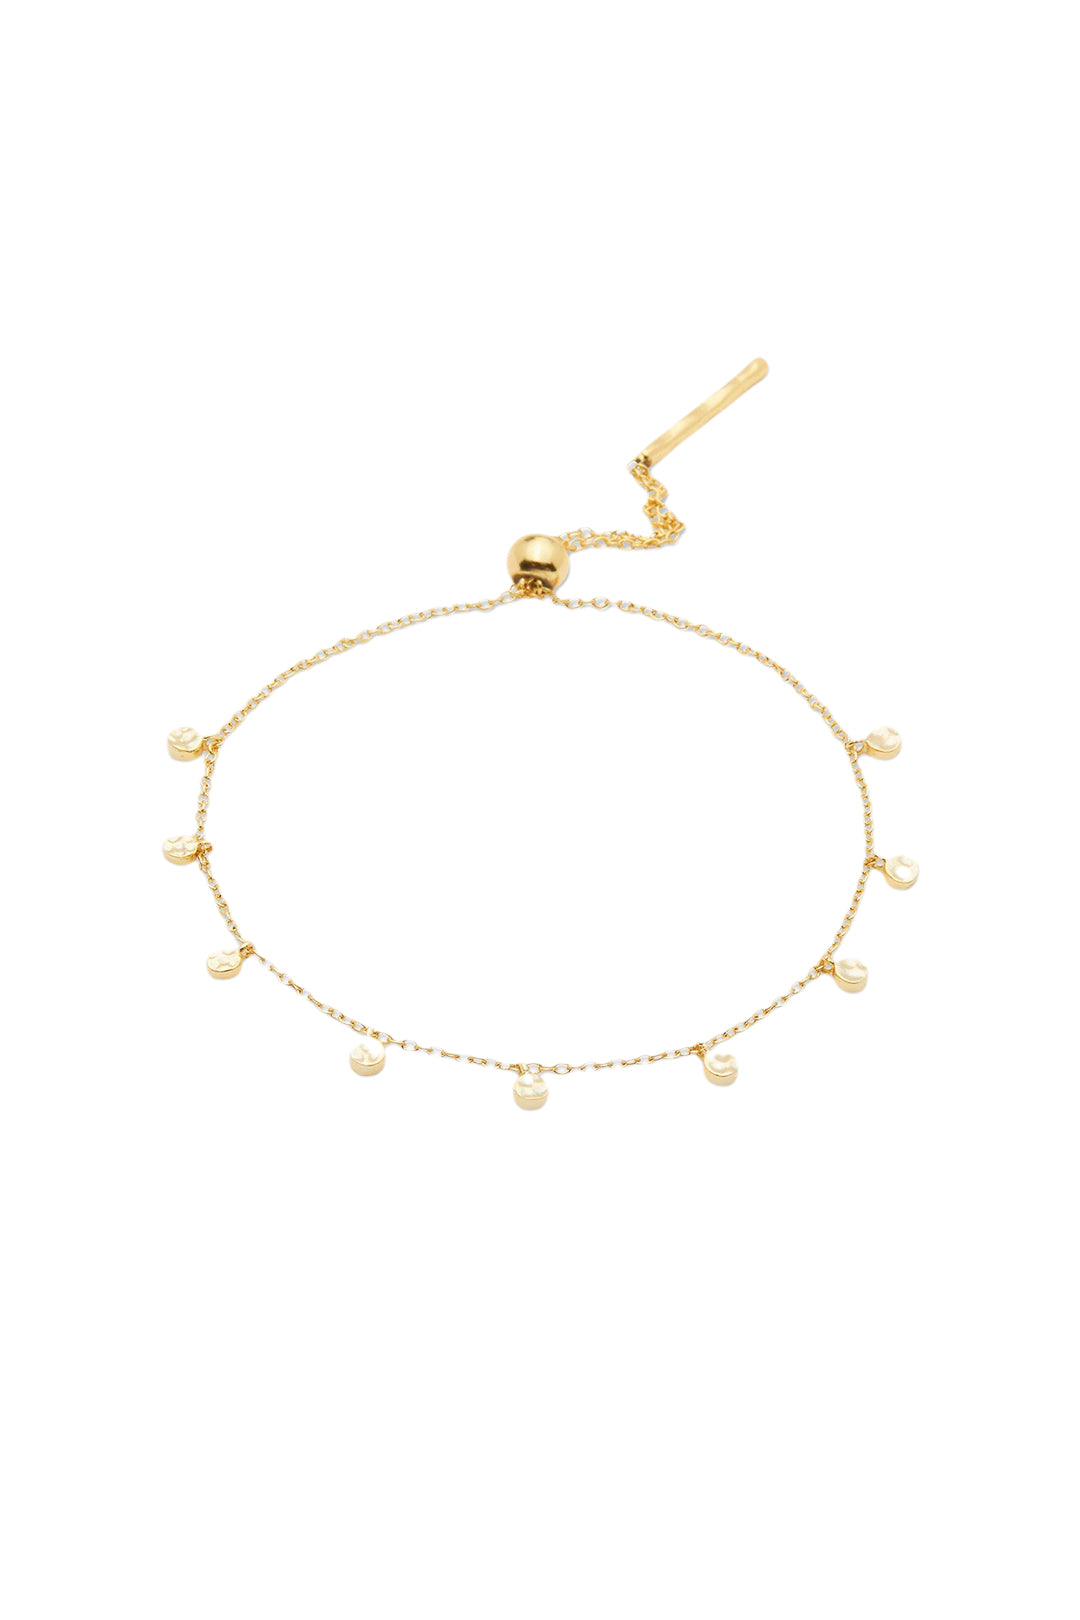 Chloe Mini Bracelet - Gold